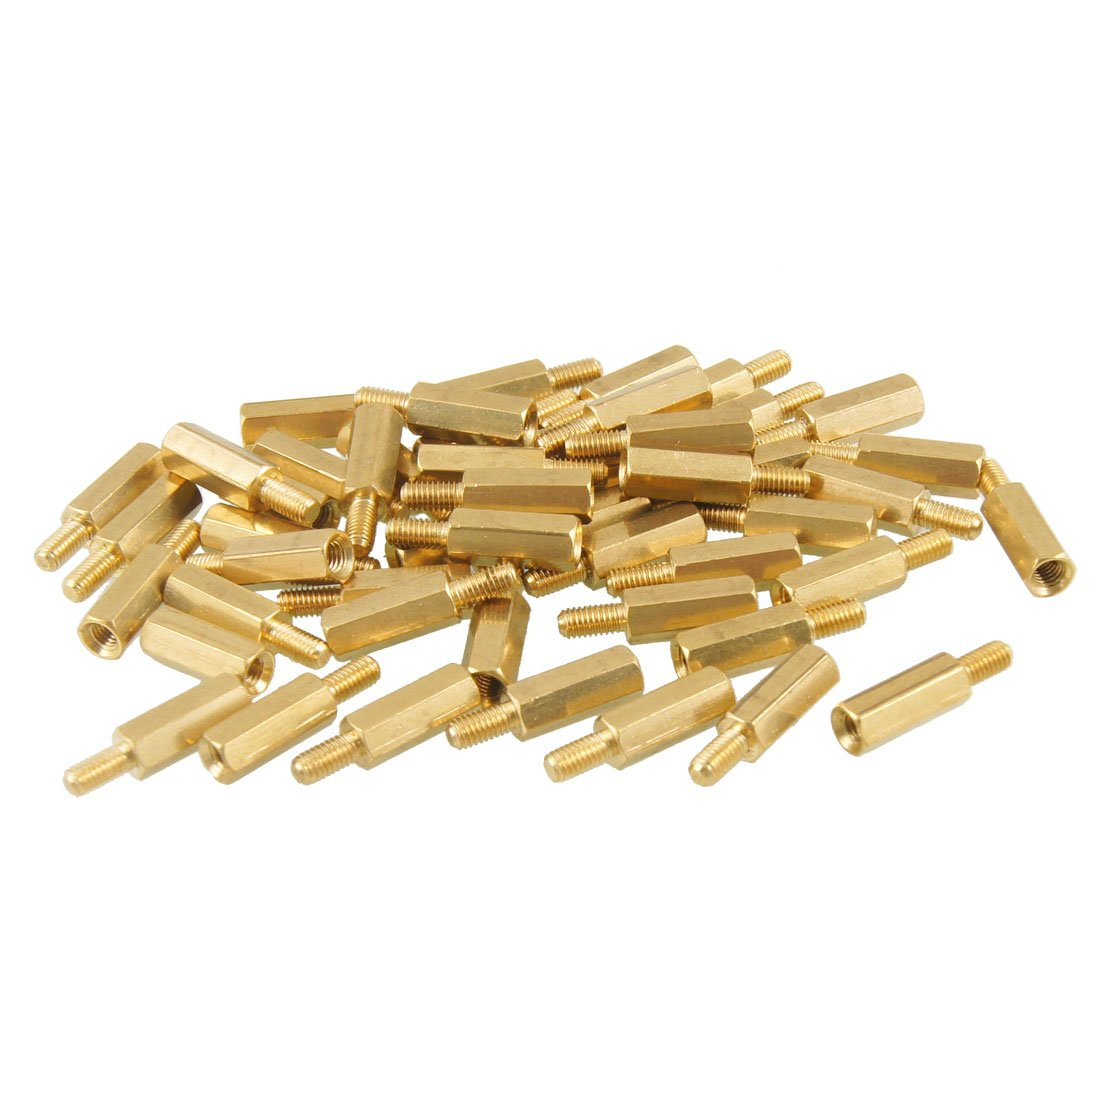 THGS 50 Pcs Brass Screw Hexagonal Stand-off Spacer M3 Male x M3 Female 12mm Body Length 20pcs m3 copper standoff spacer stud male to female m3 4 6mm hexagonal stud length 4 5 6 7 8 9 10 11 12mm